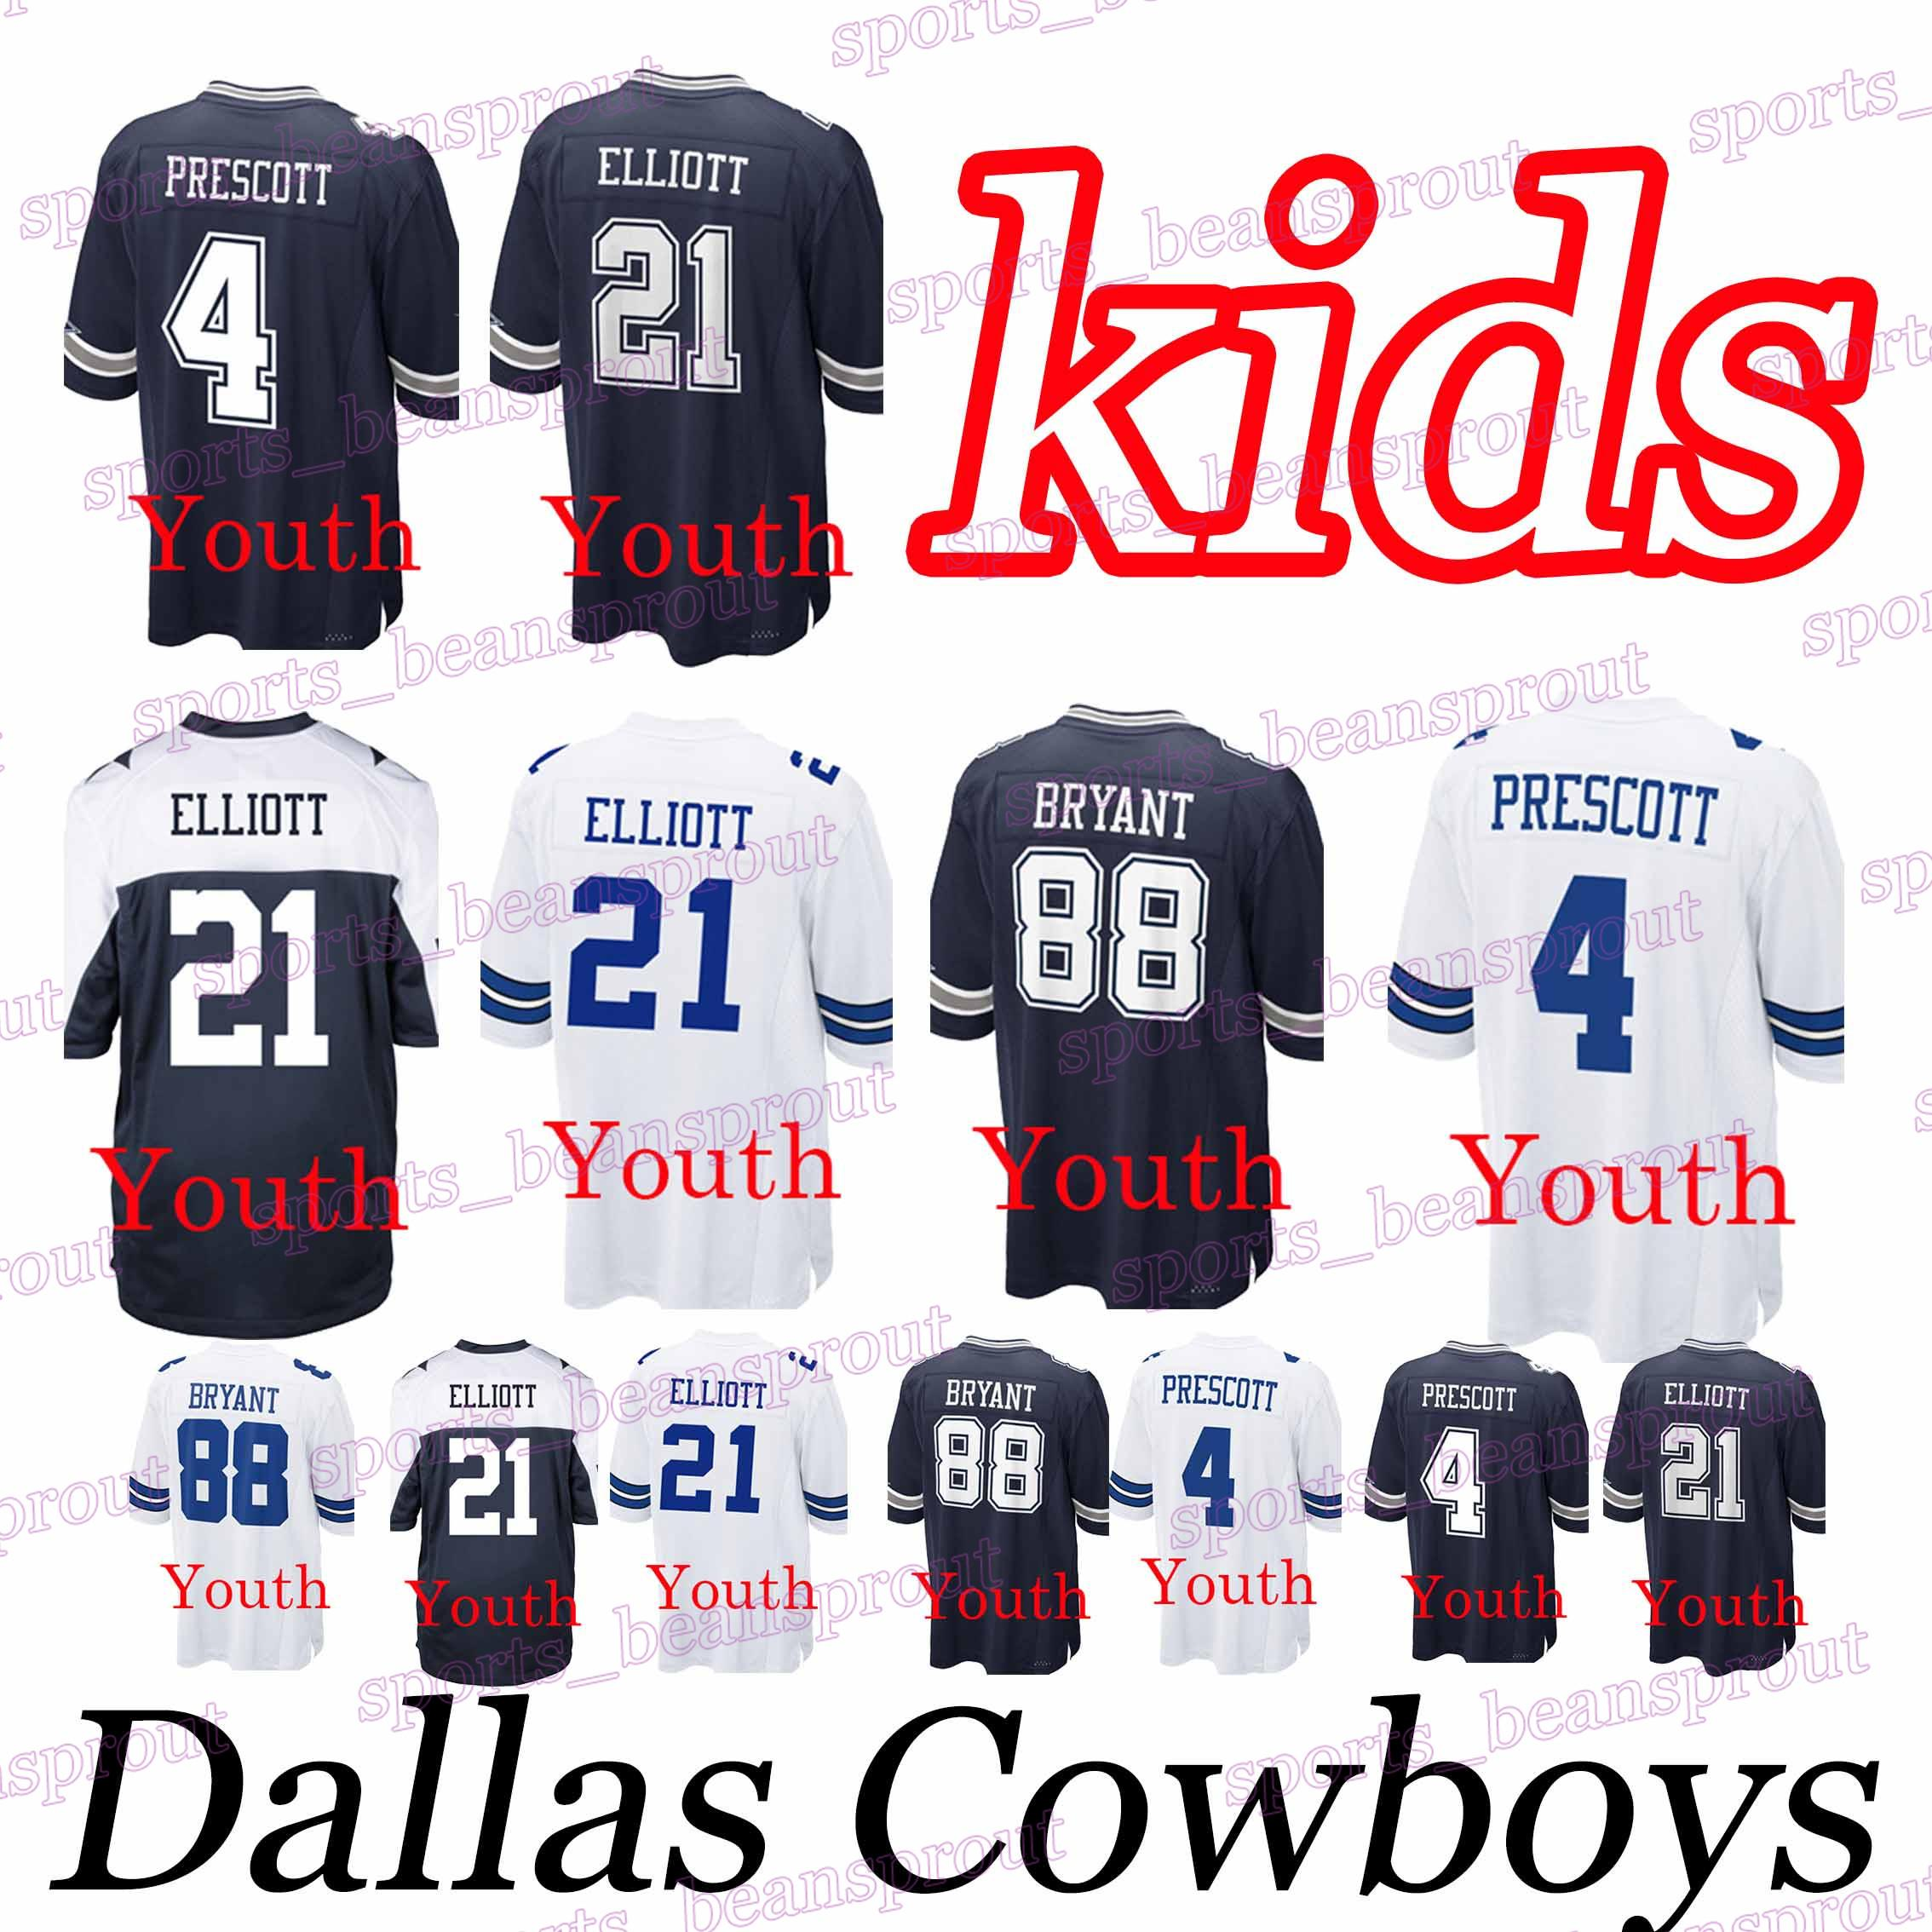 31358265b61 2019 YOUTH Dallas Cowboys JERSEYS 21 Ezekiel Elliott 4 Dak Prescott 88 Dez  Bryant Hot Sale High Quality Tracksuit JERSEY From Ball_2019_jerseys, ...